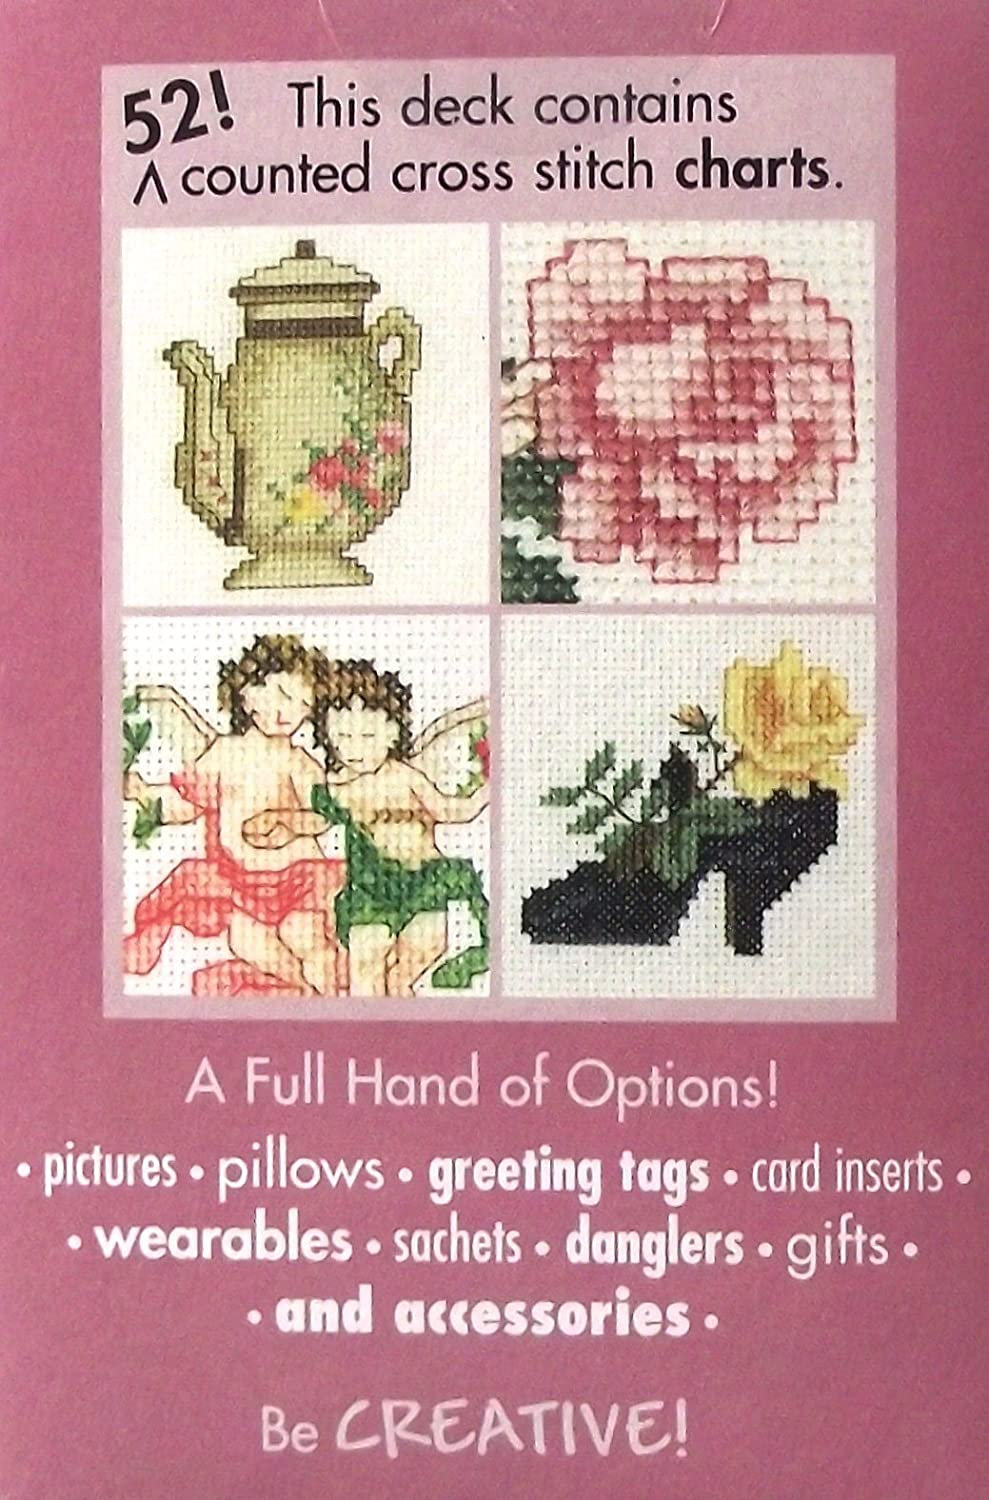 Bucilla Creating With A Full Deck 52 counted cross stitch charts playing cards